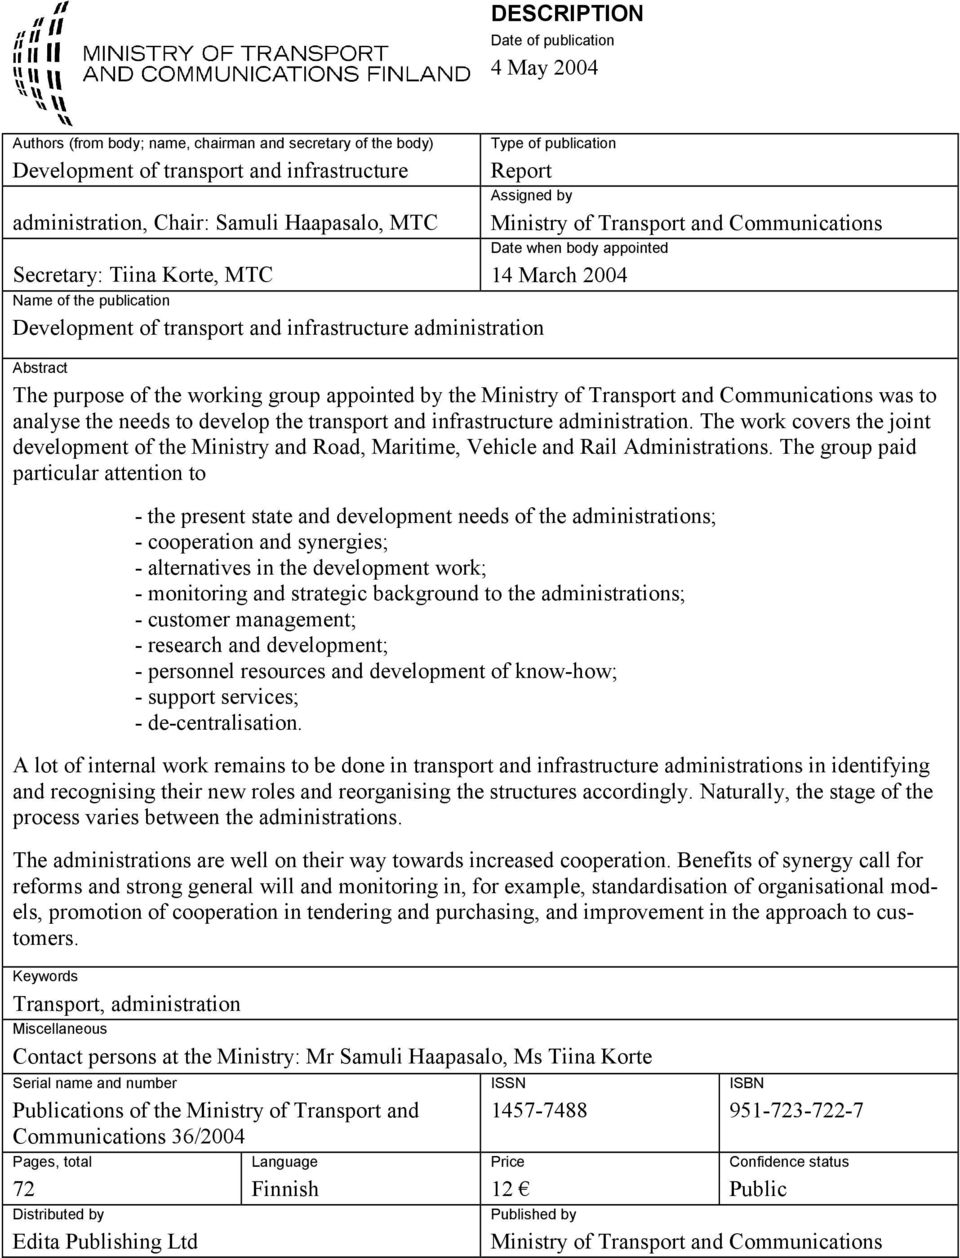 transport and infrastructure administration Abstract The purpose of the working group appointed by the Ministry of Transport and Communications was to analyse the needs to develop the transport and